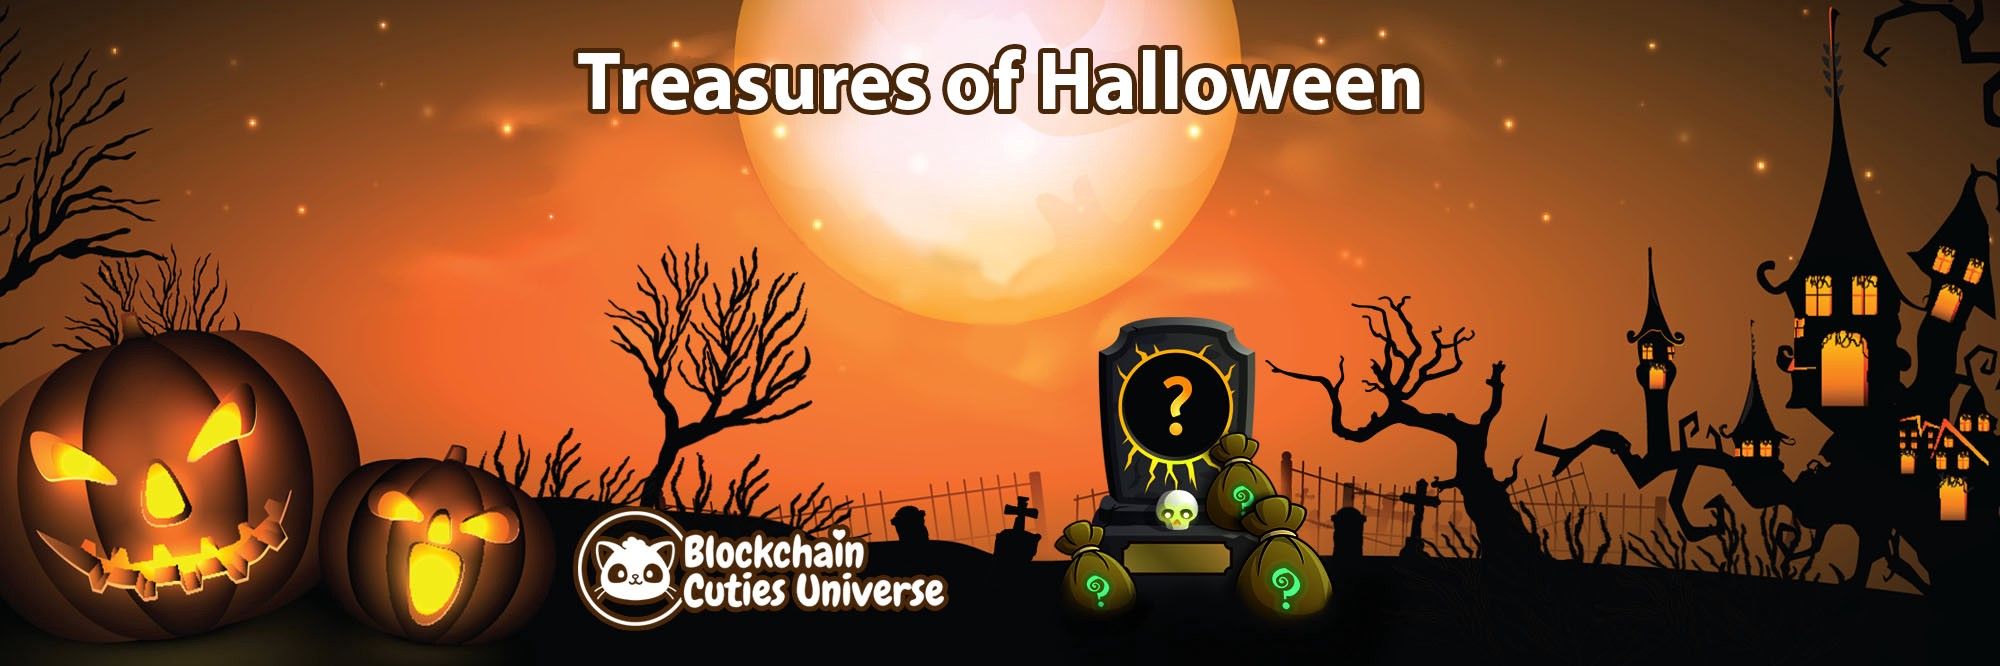 Halloween Treasures You Unlocked